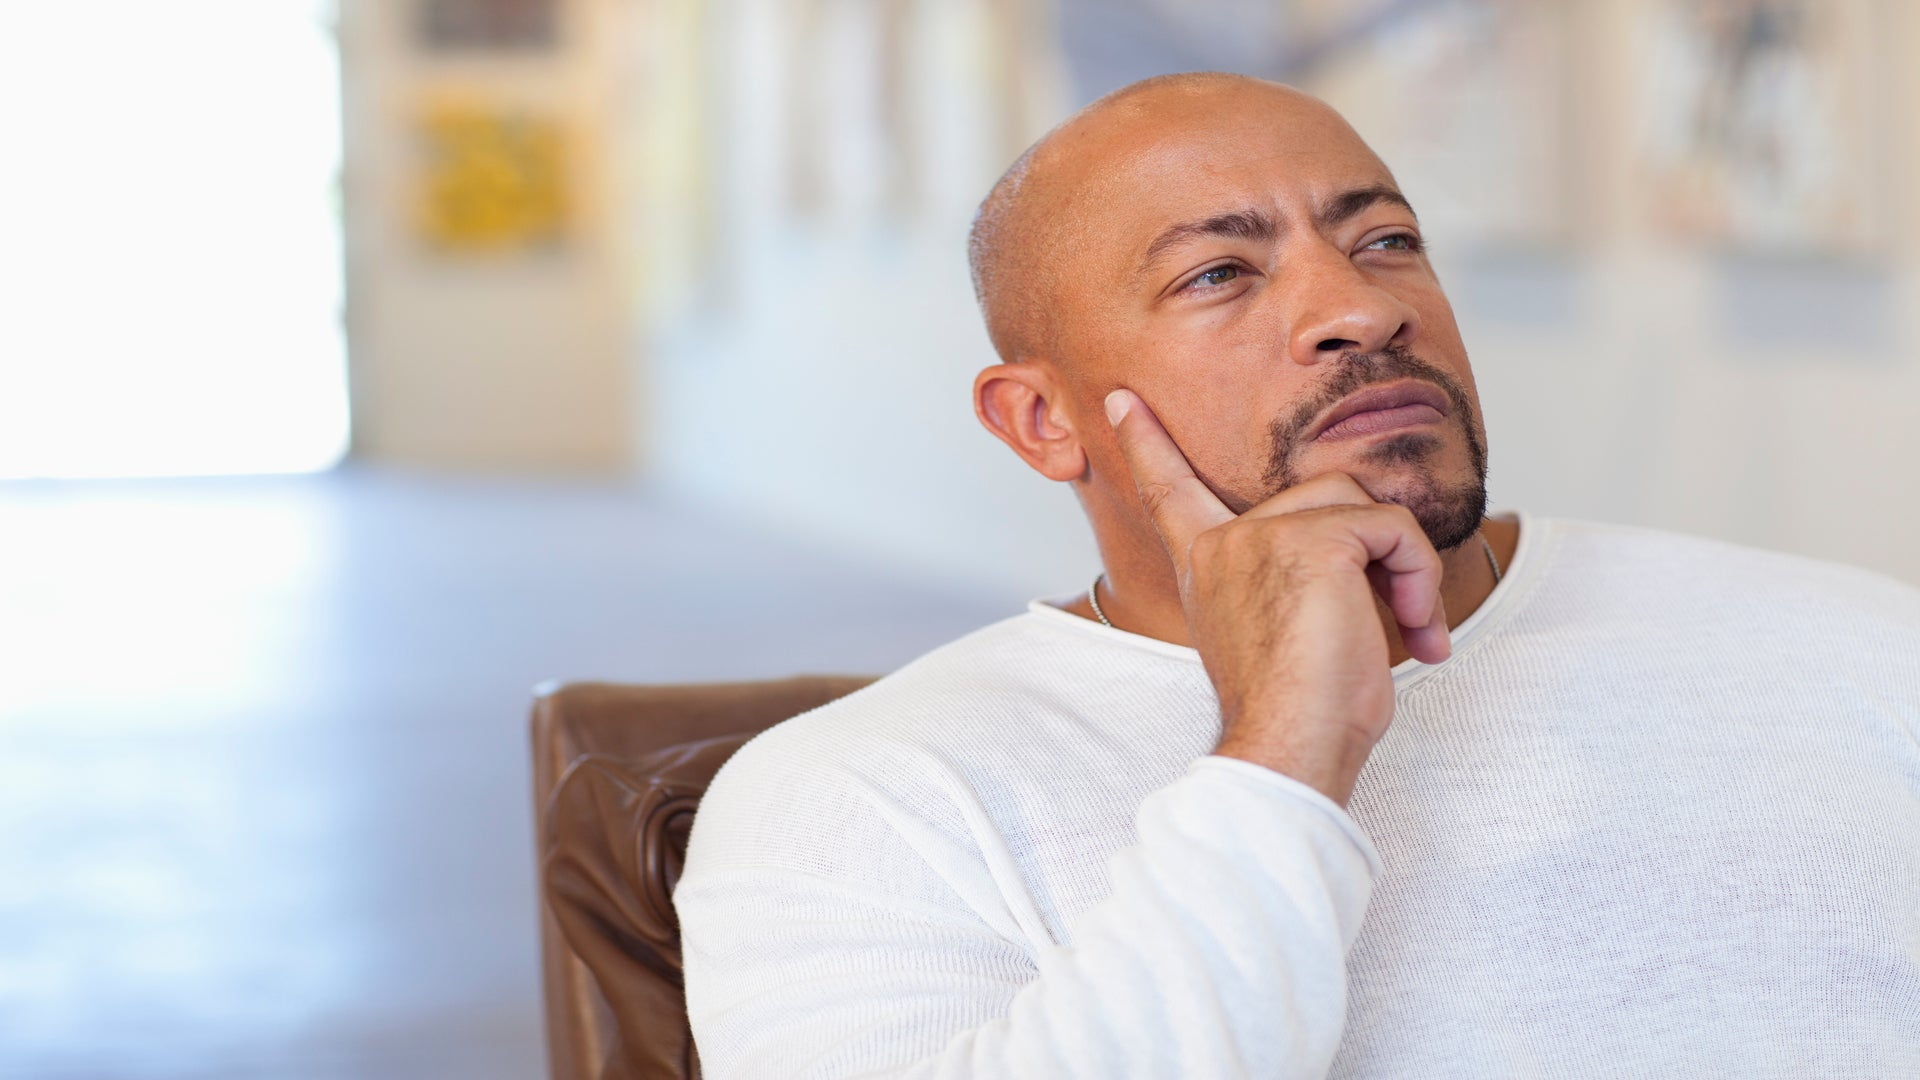 Real Talk: Ladies, This Is Your HIV Wake-Up Call